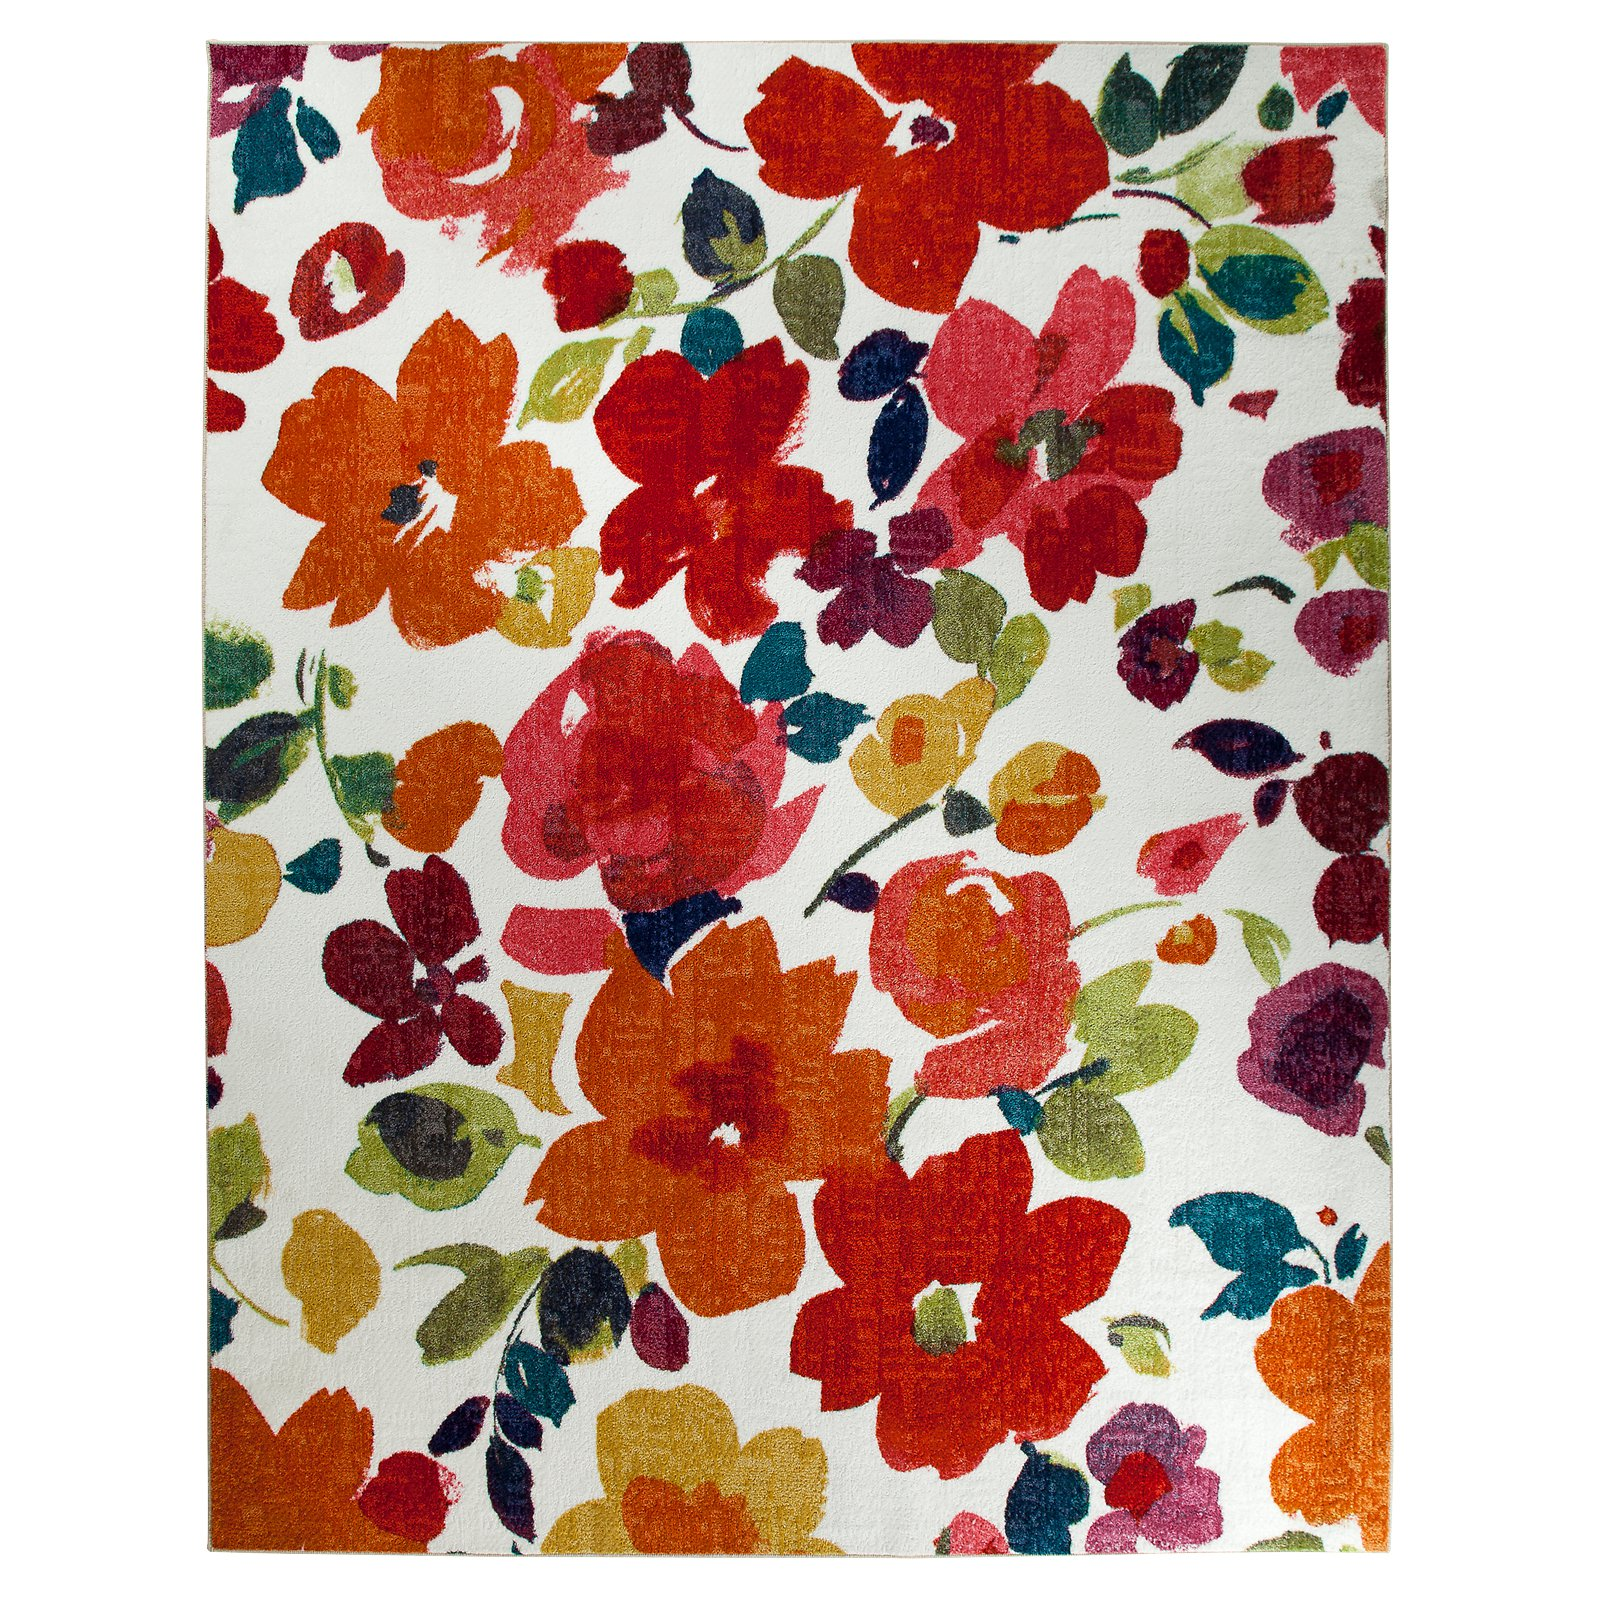 Mohawk Bright Floral Toss Multi Rug by Mohwak Home